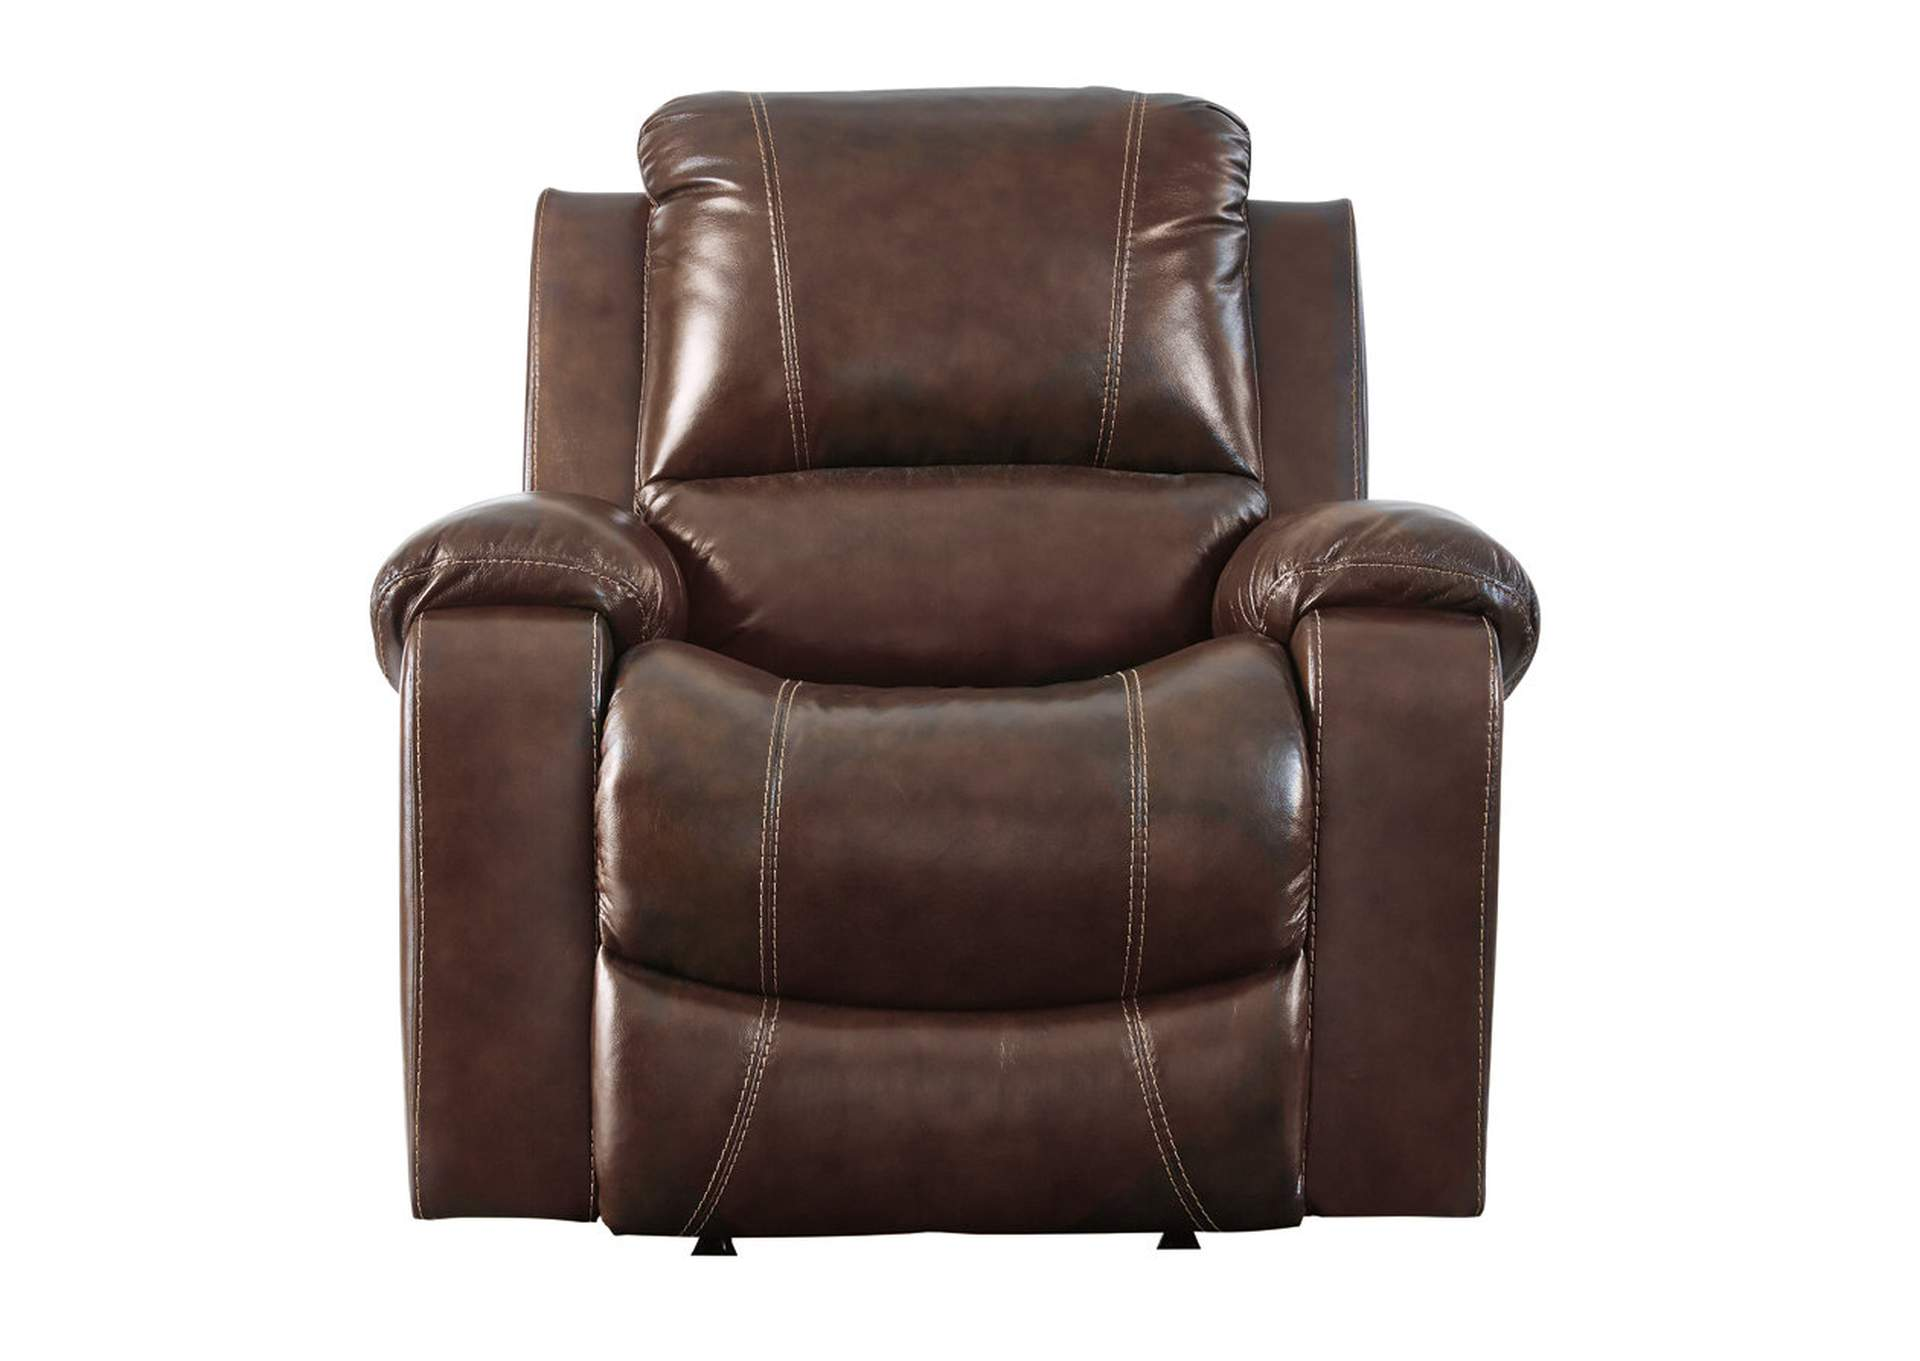 Rackingburg Mahogany Rocker Recliner,Signature Design By Ashley